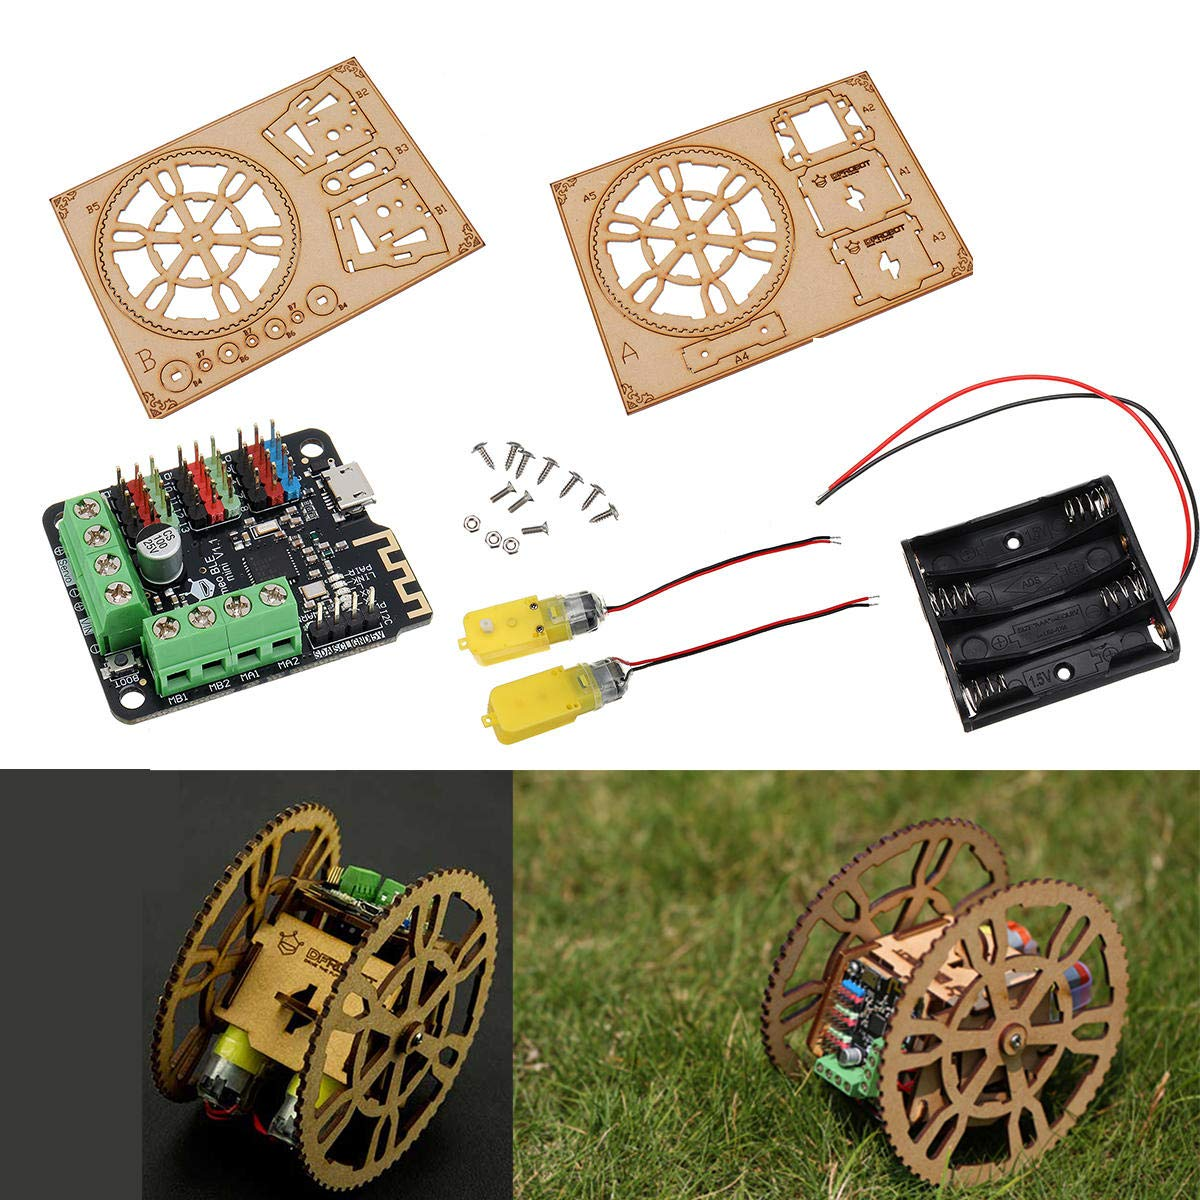 FlameWheel Remote Control Smart Robot Kit for Support iOS App